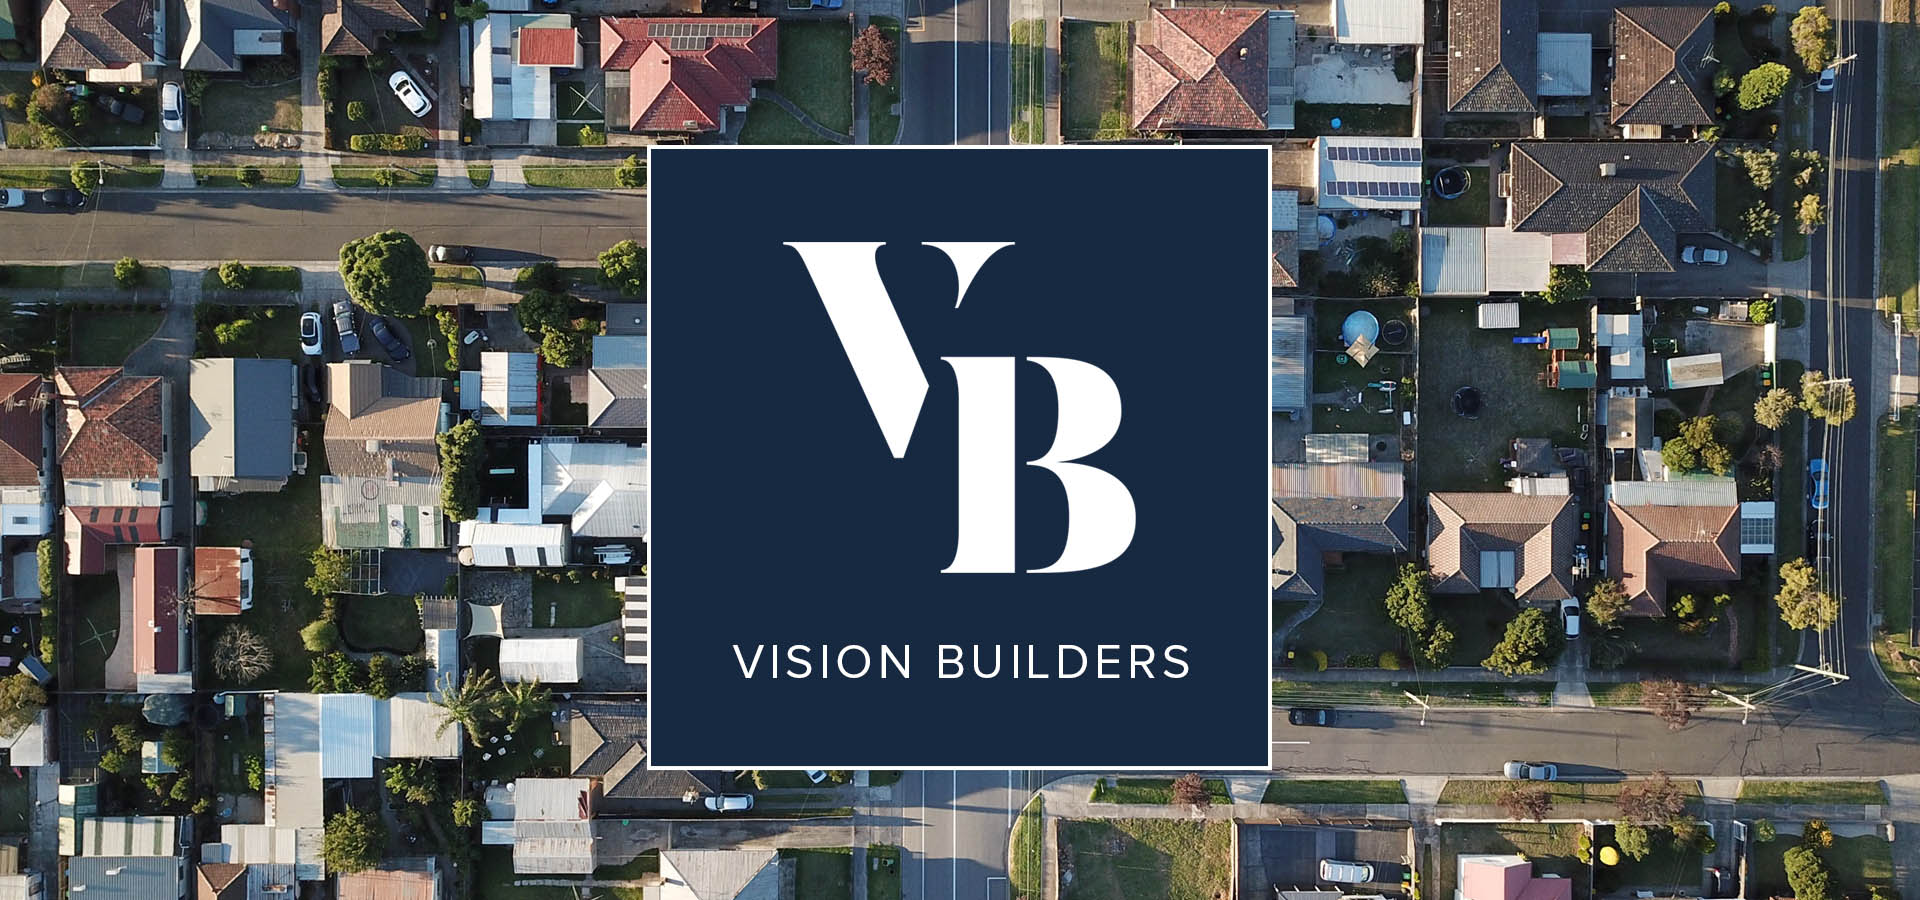 C3 Church Inner East Brisbane vision builders